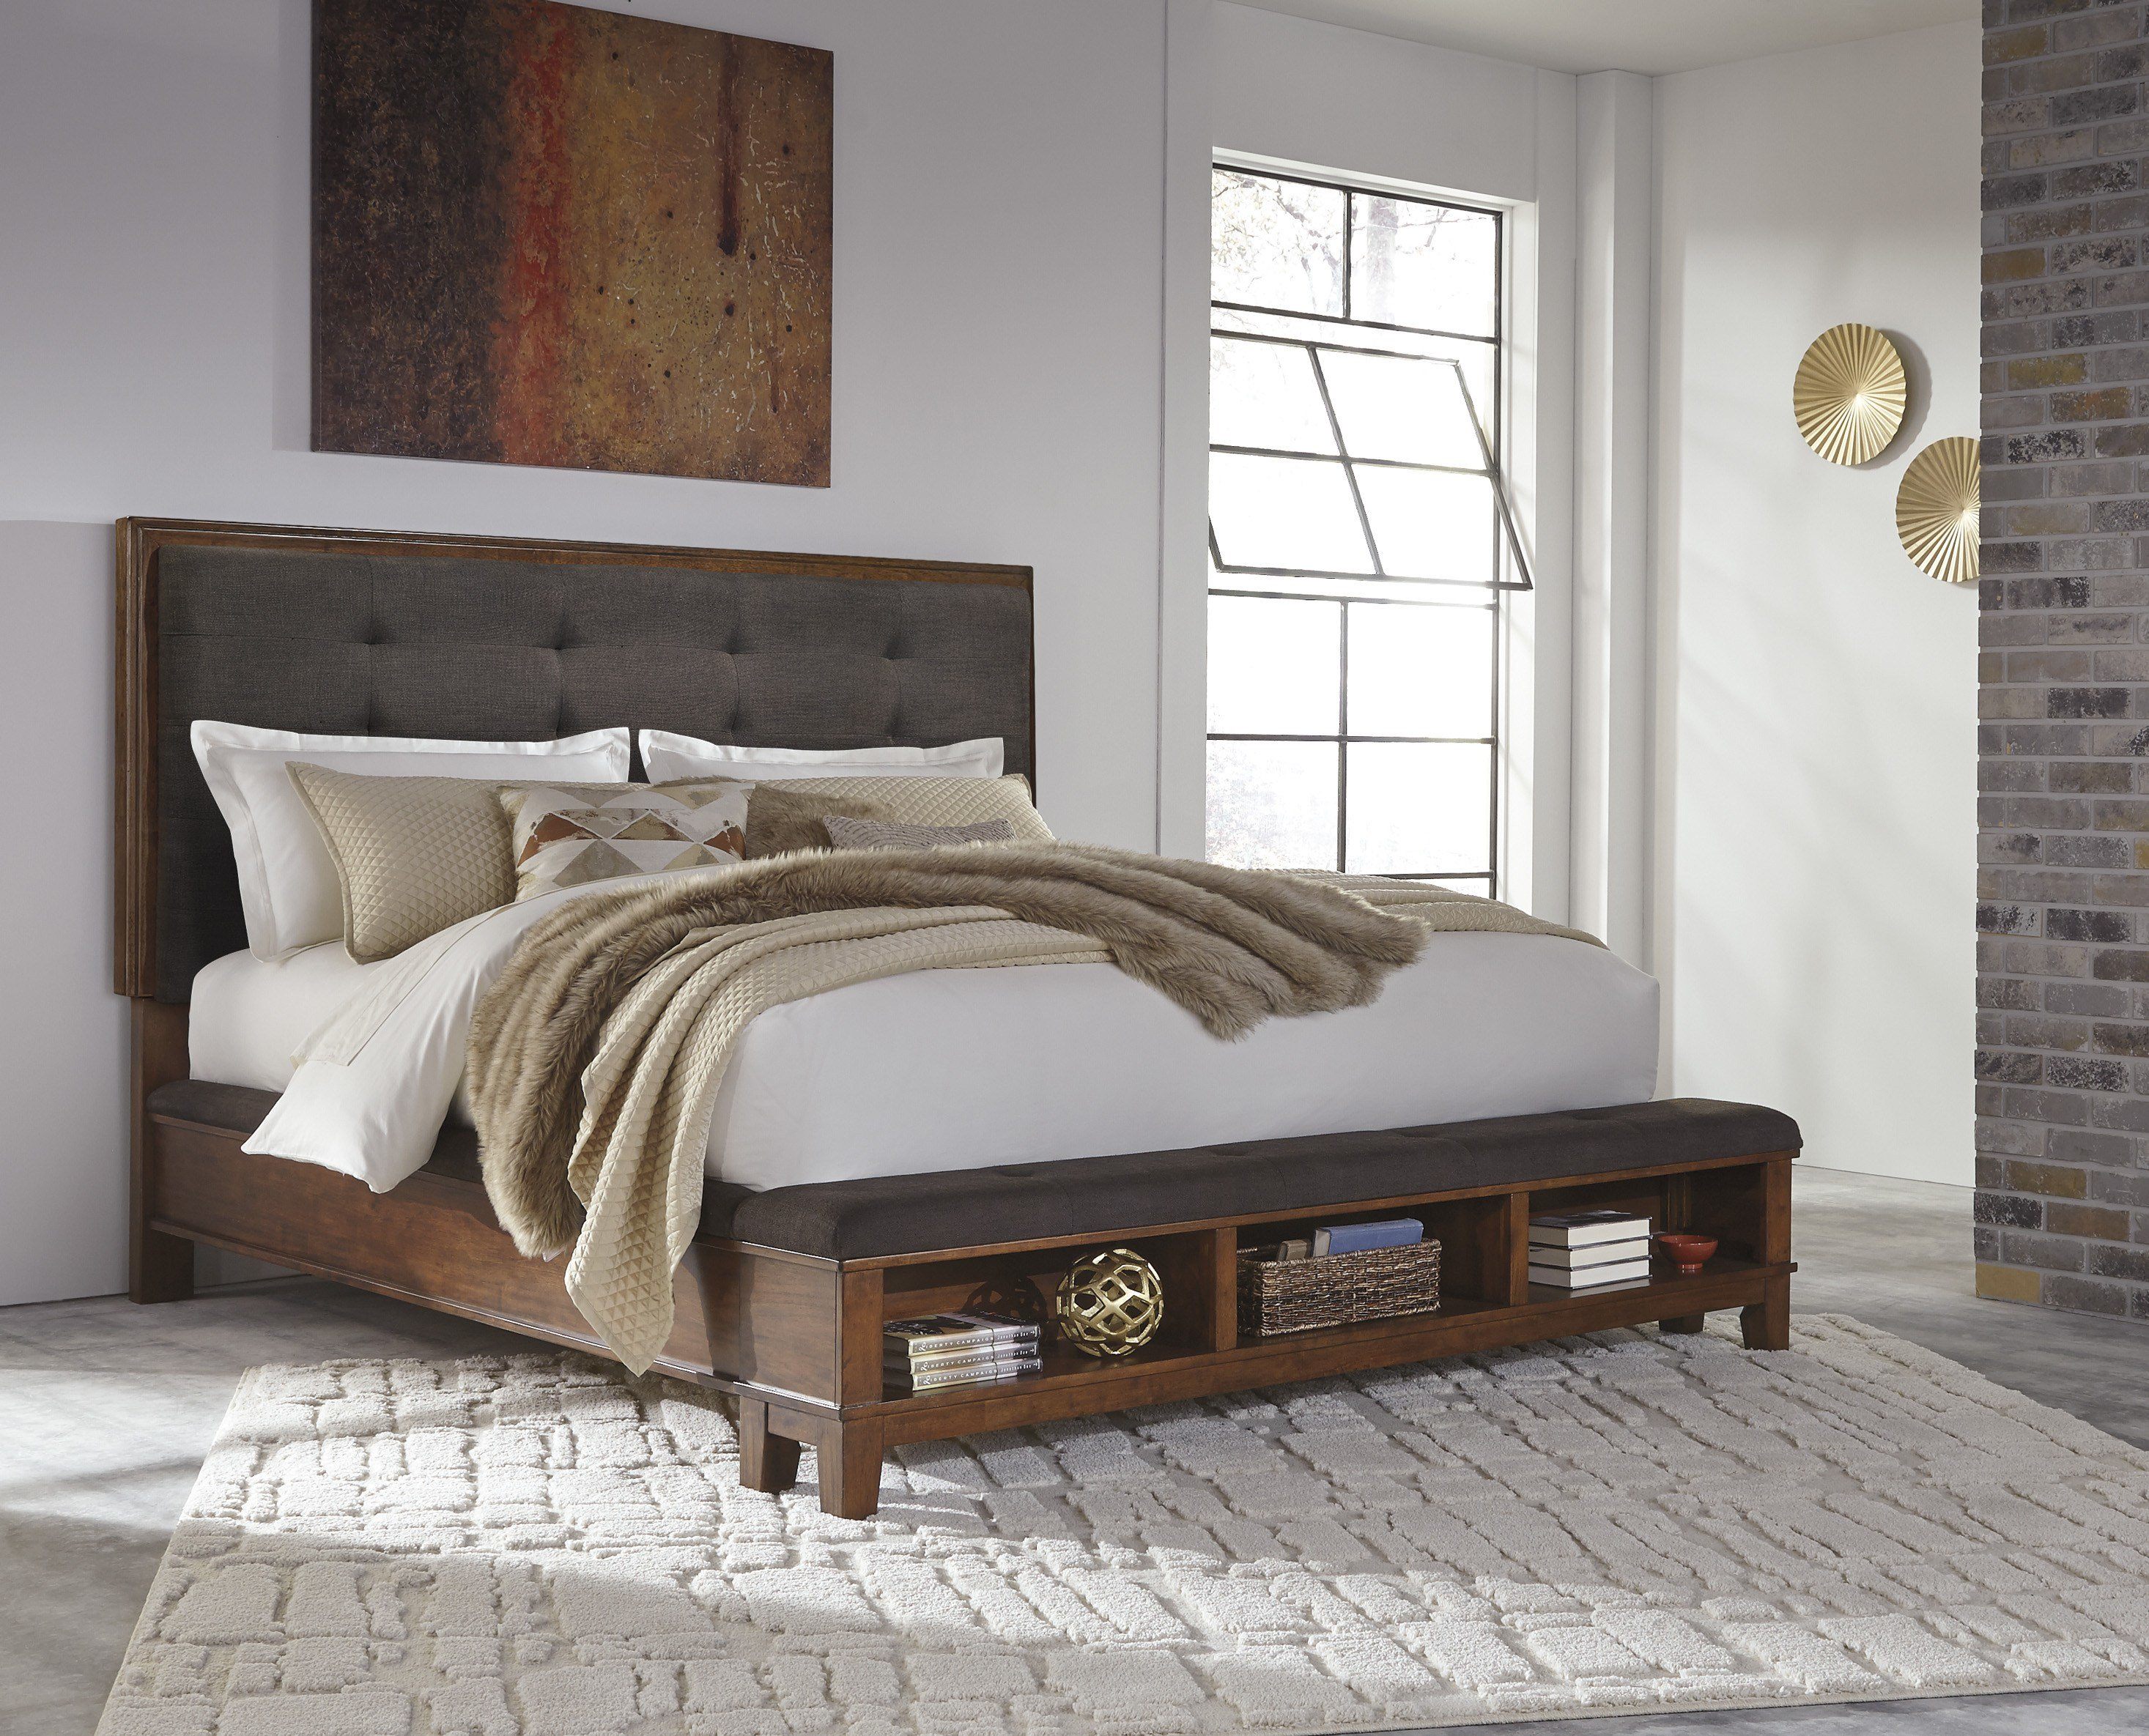 Best Ralene Bedroom Set All American Furniture Buy 4 Less With Pictures